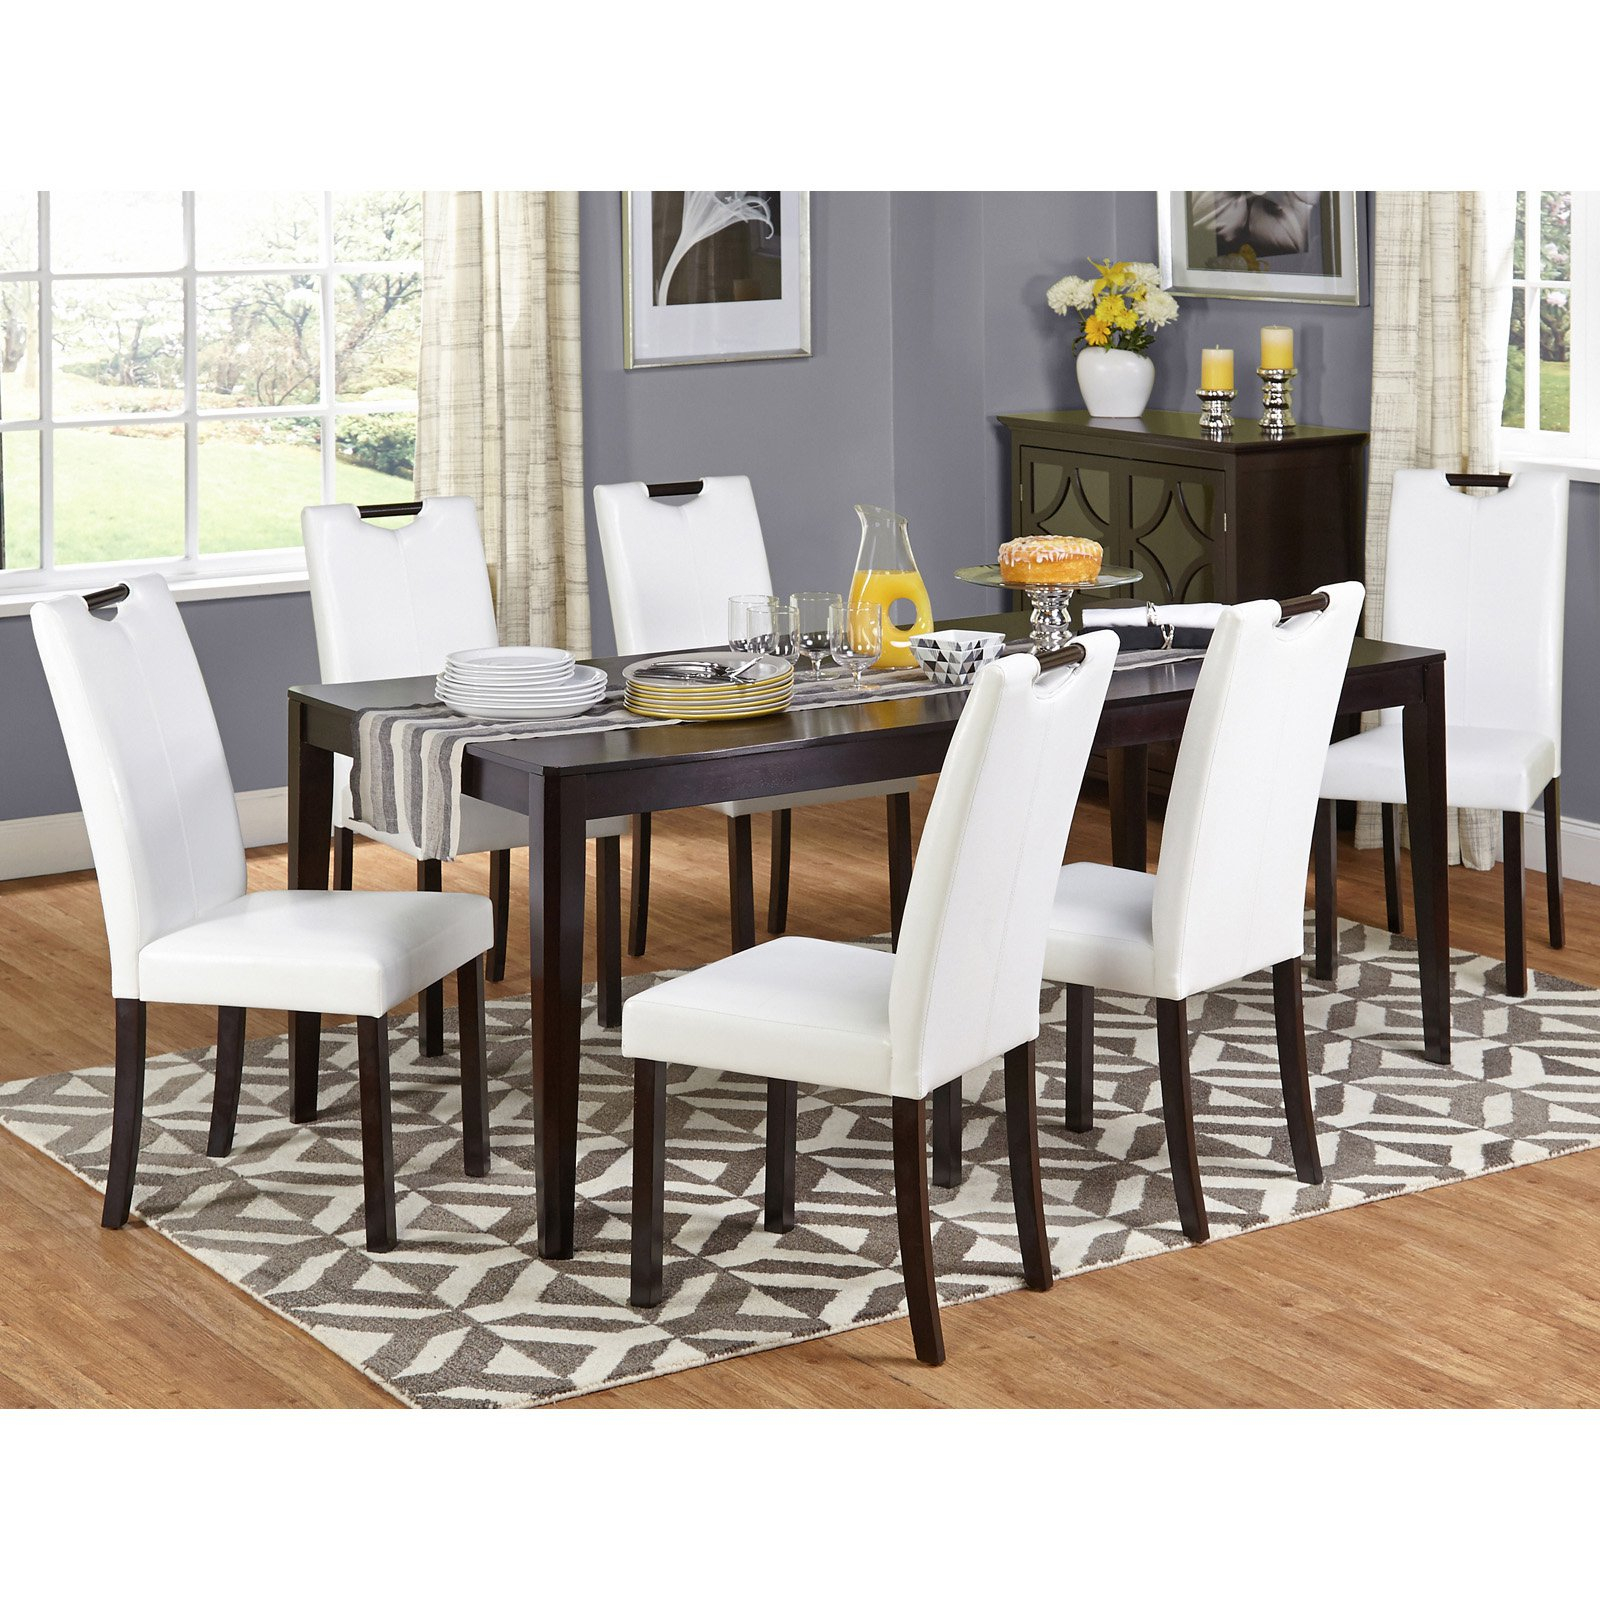 Target Marketing Systems Tilo 7 Piece Dining Table Set Walmart with regard to 15 Some of the Coolest Designs of How to Craft 7 Piece Living Room Sets